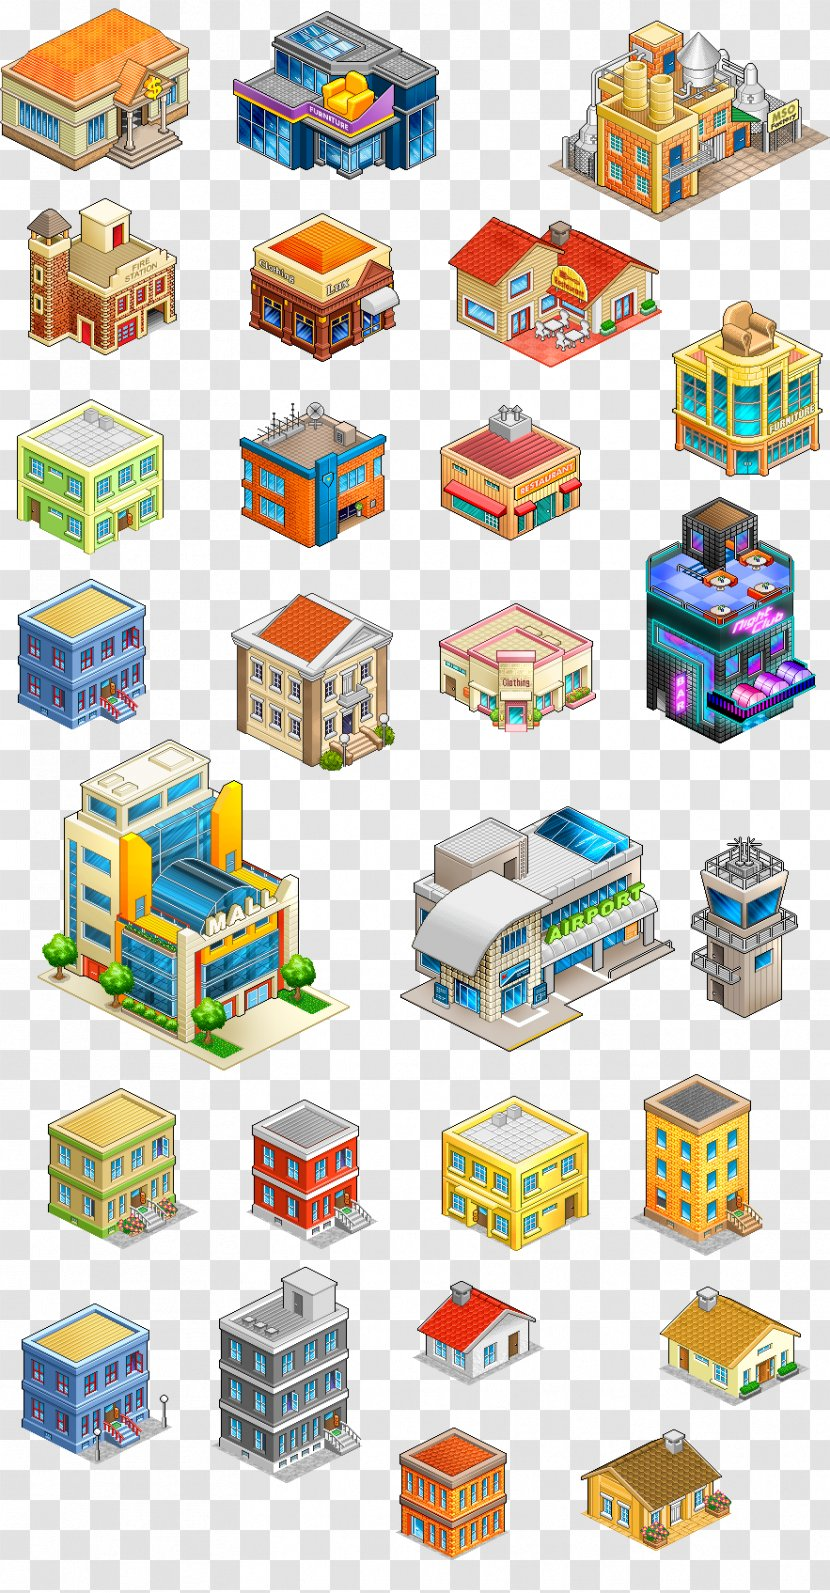 Building Isometric Projection Graphics In Video Games And Pixel Art Game Transparent Png